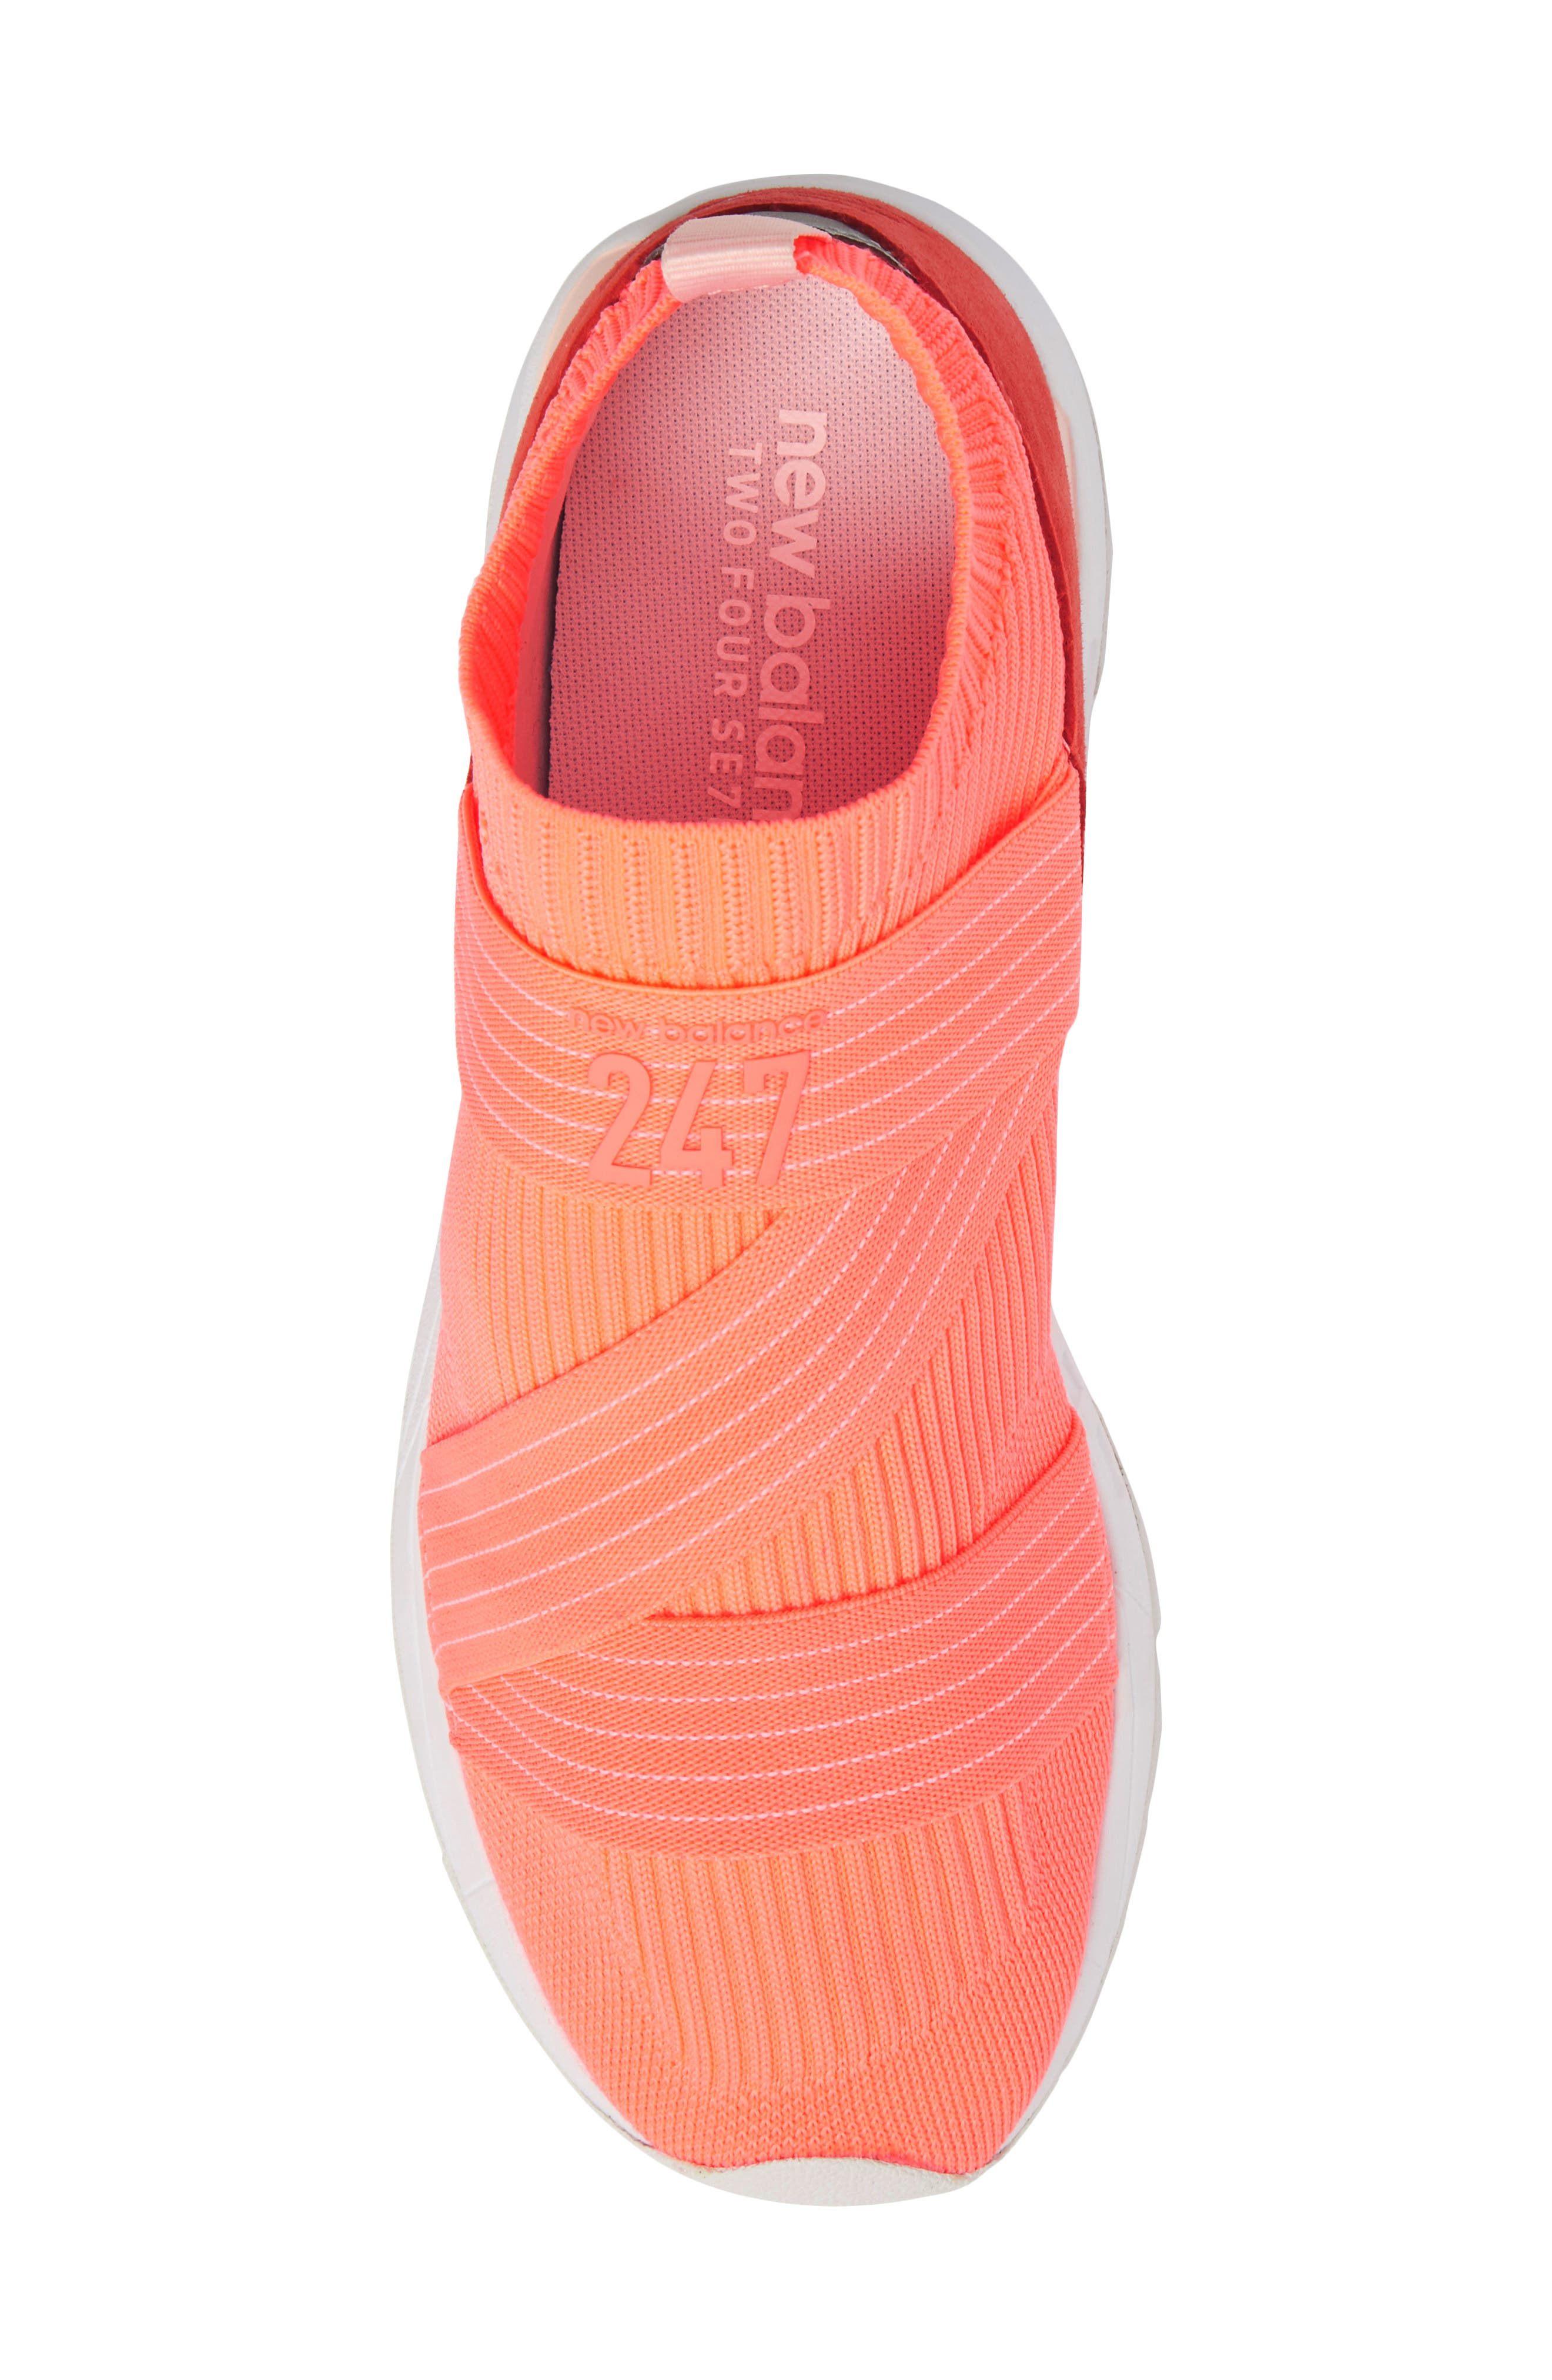 247 Knit Sneaker,                             Alternate thumbnail 5, color,                             Fiji